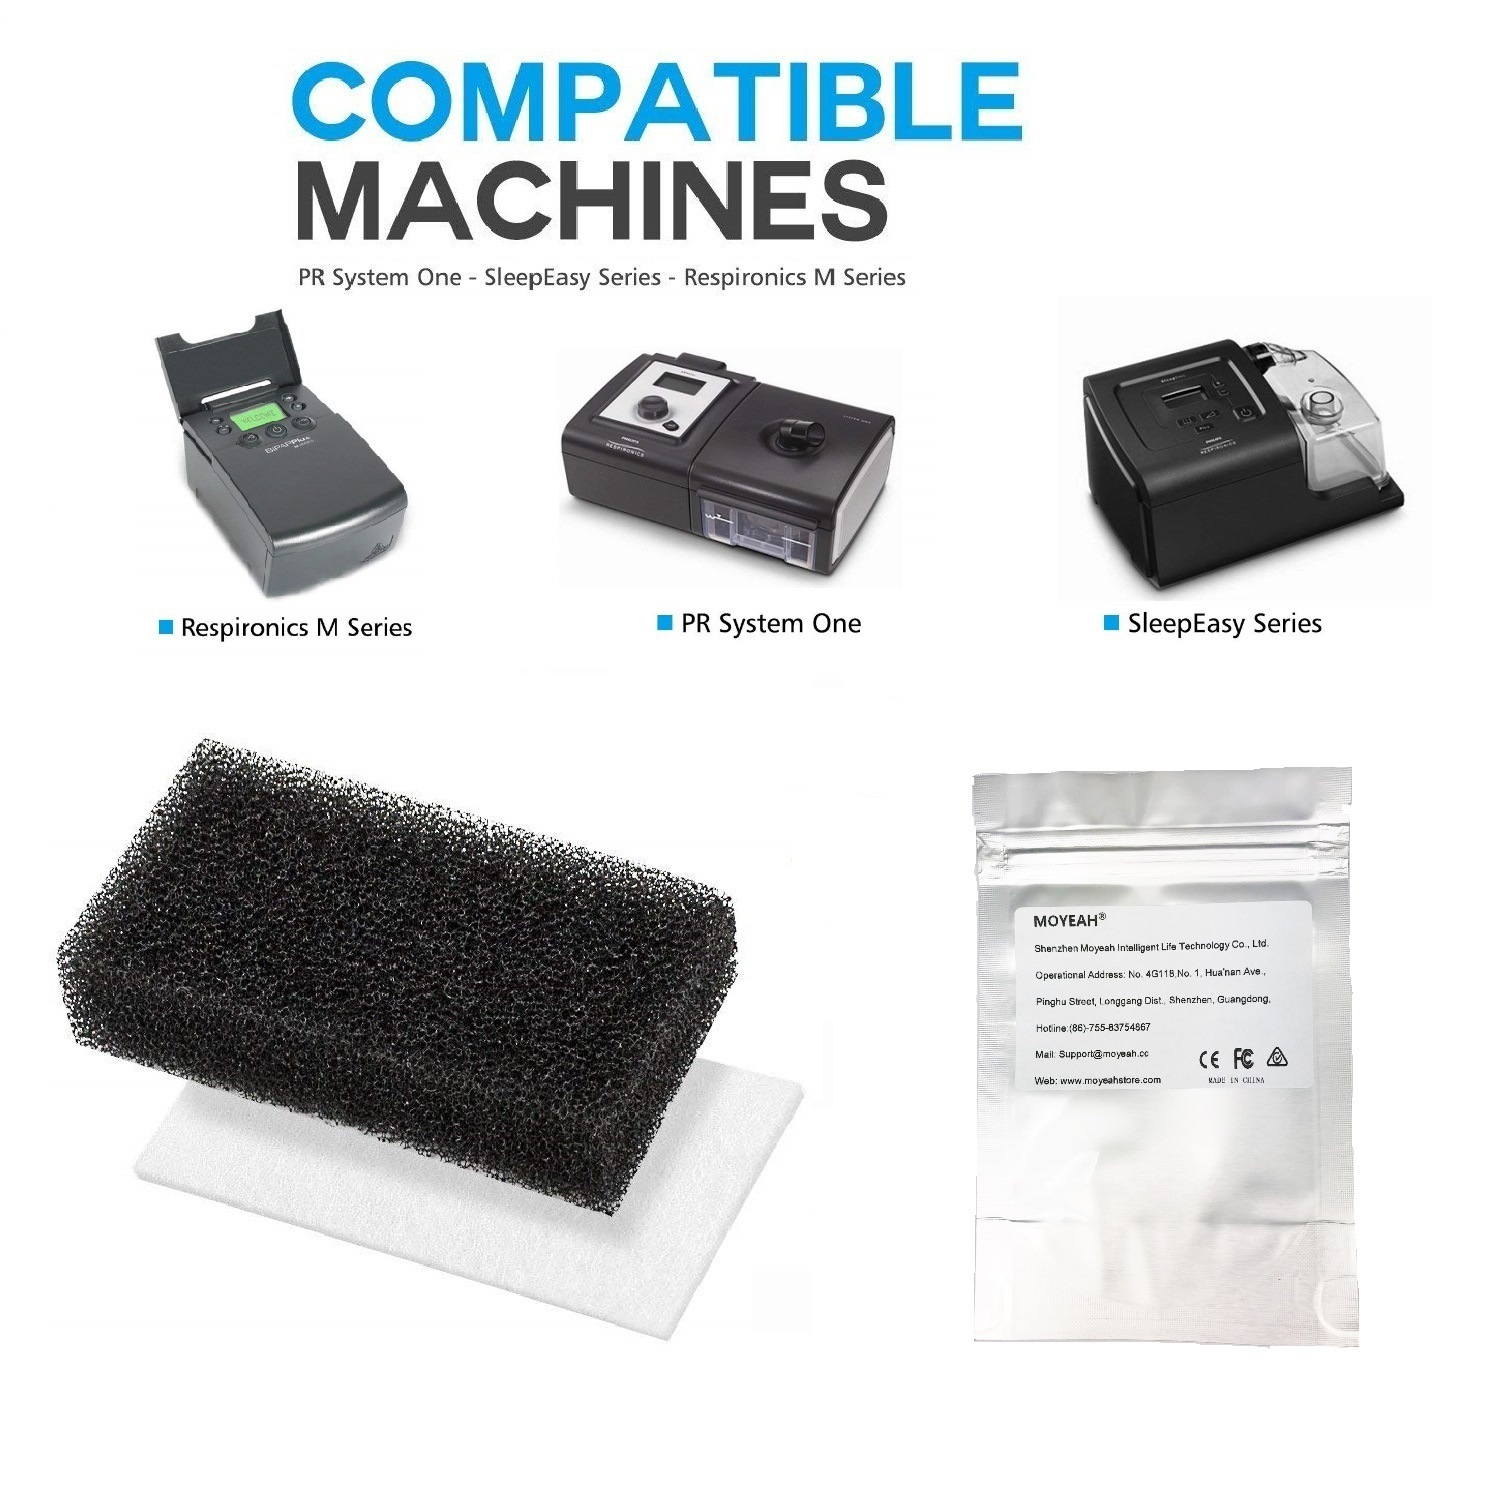 Wholesale Ultra Fine CPAP Foam Filters for Philips Respironics M Series / PR System One /SleepEasy Series (6pcs, Black + White)